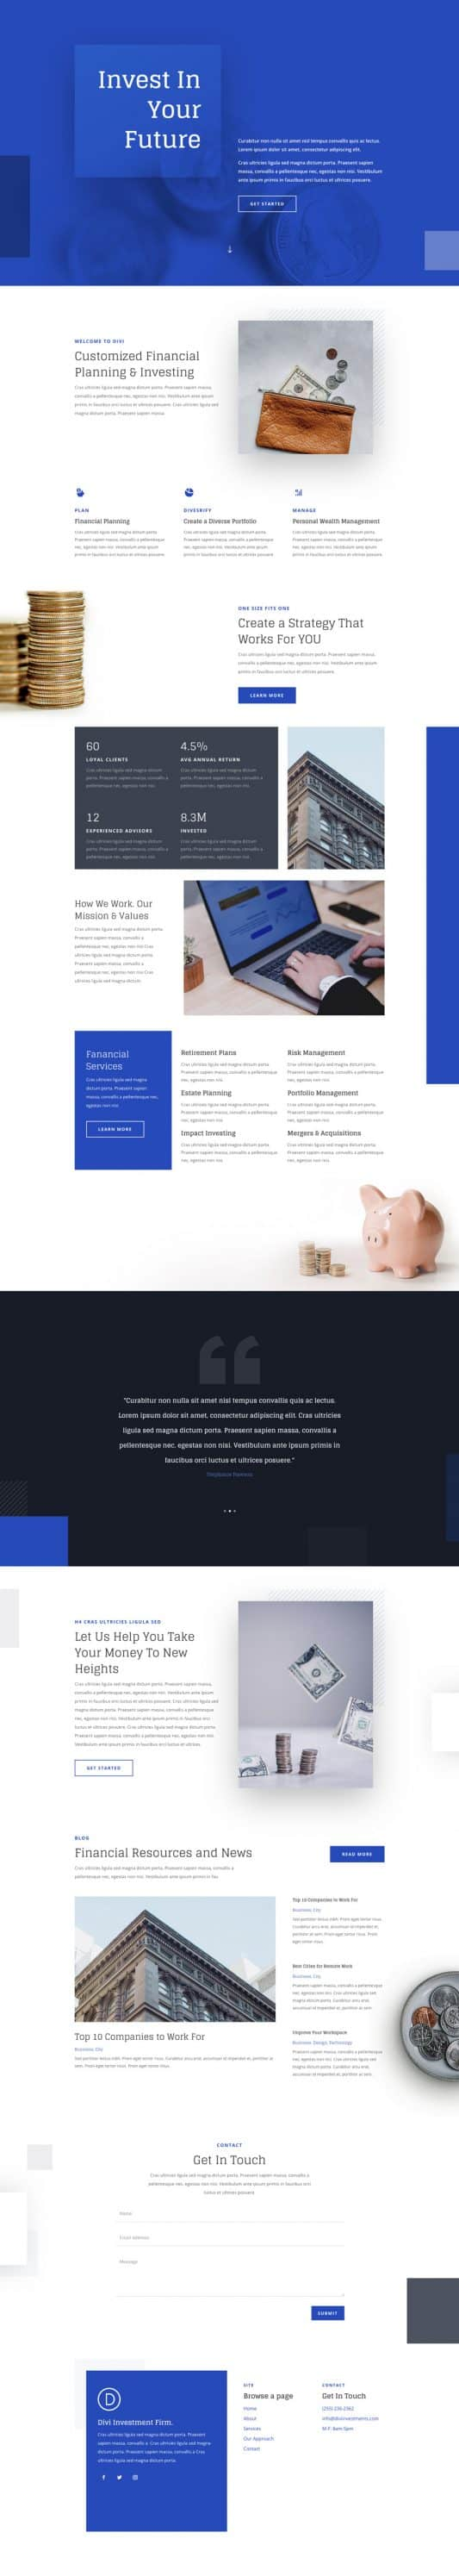 Investment Company Landing Page Style 1